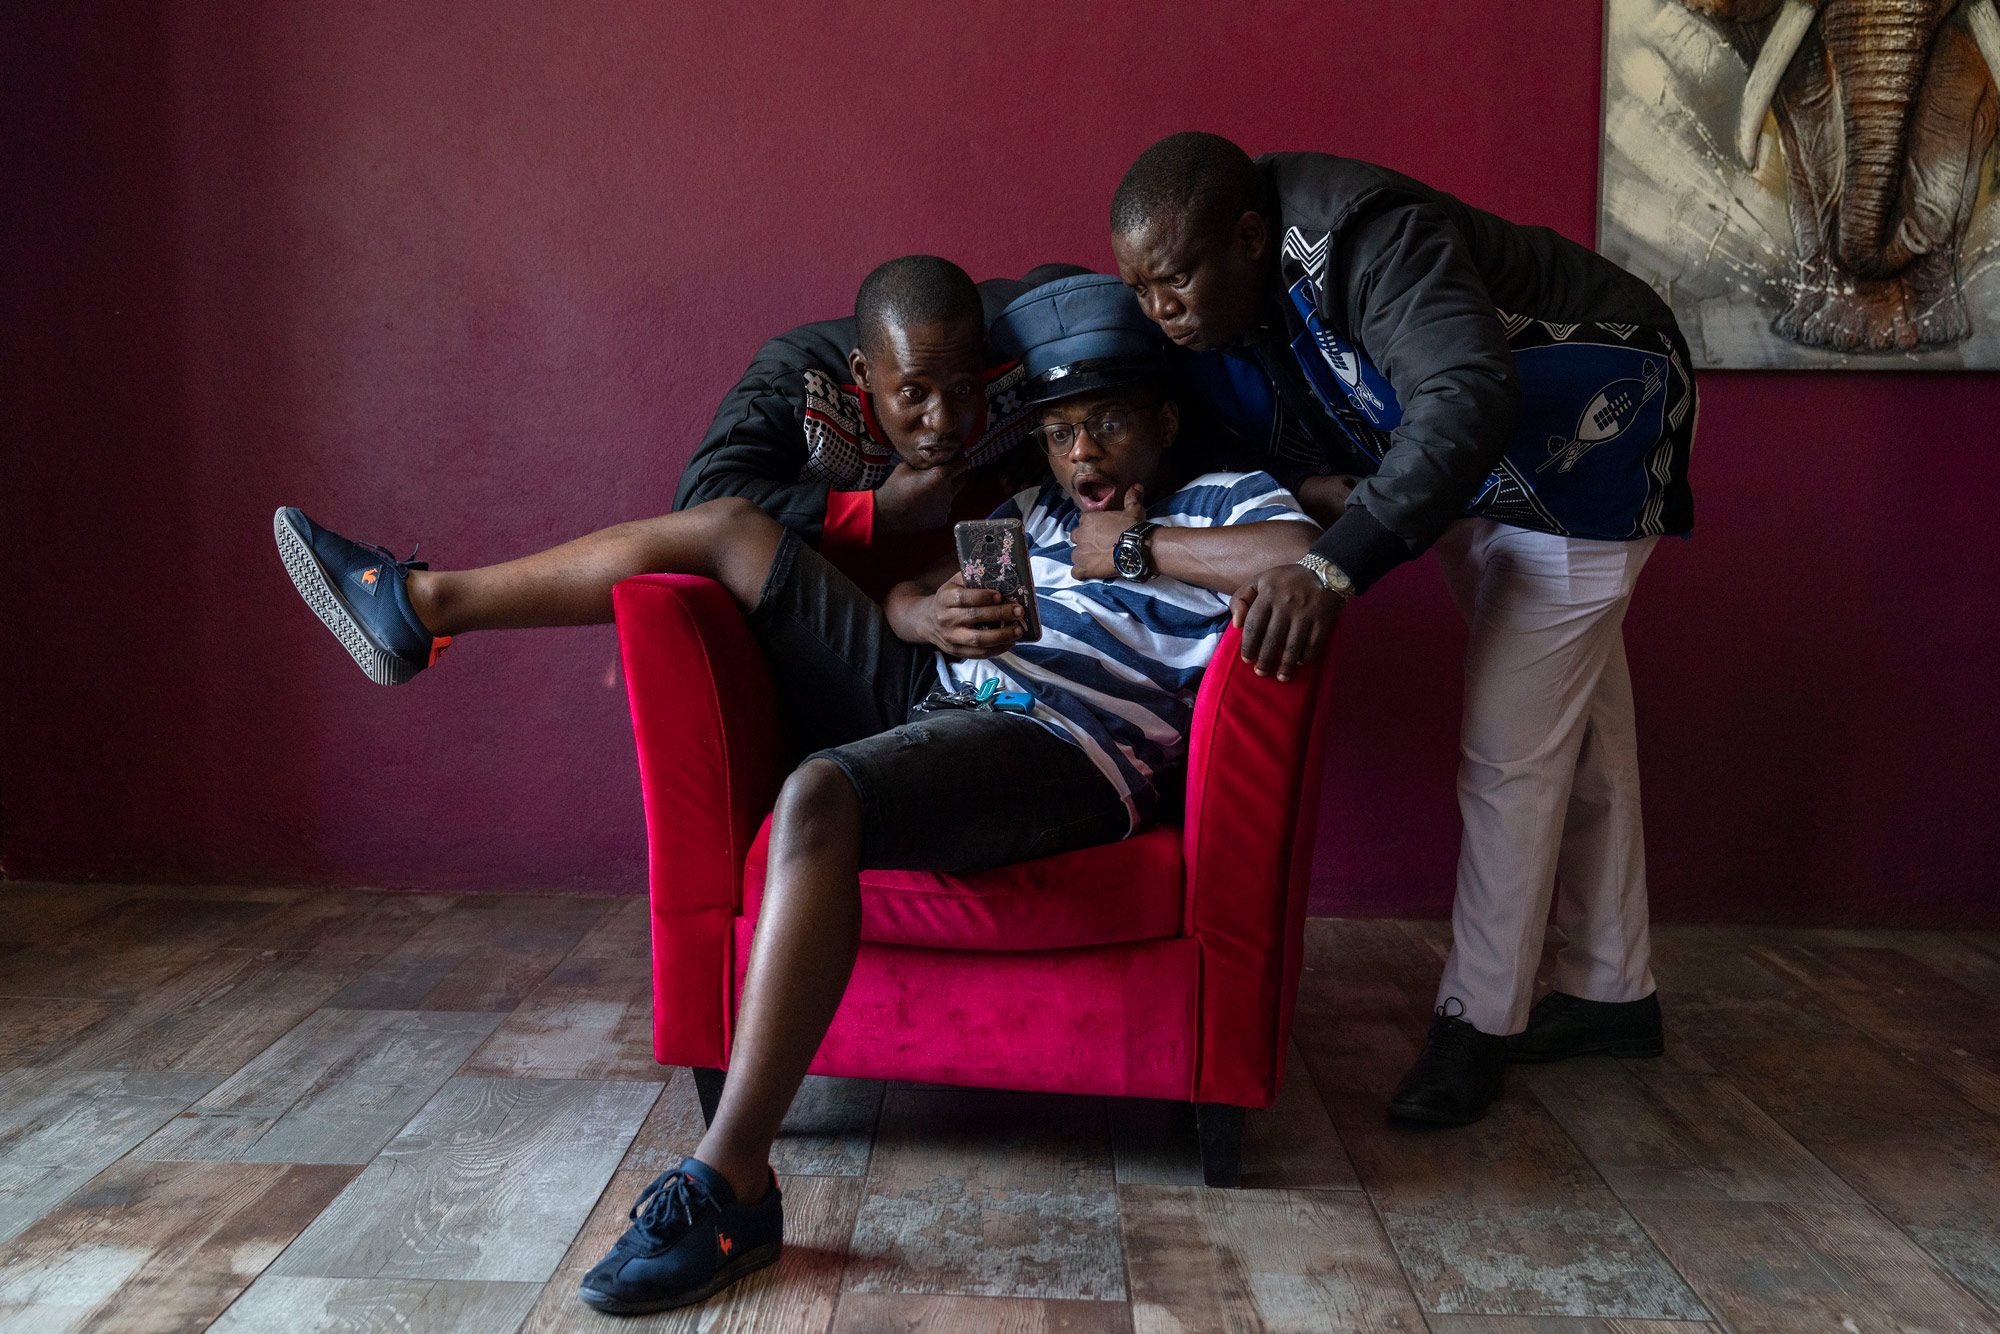 7 August 2019: The popular comedy trio has managed to leverage social media to grow their comedic imprint in eSwatini and South Africa.